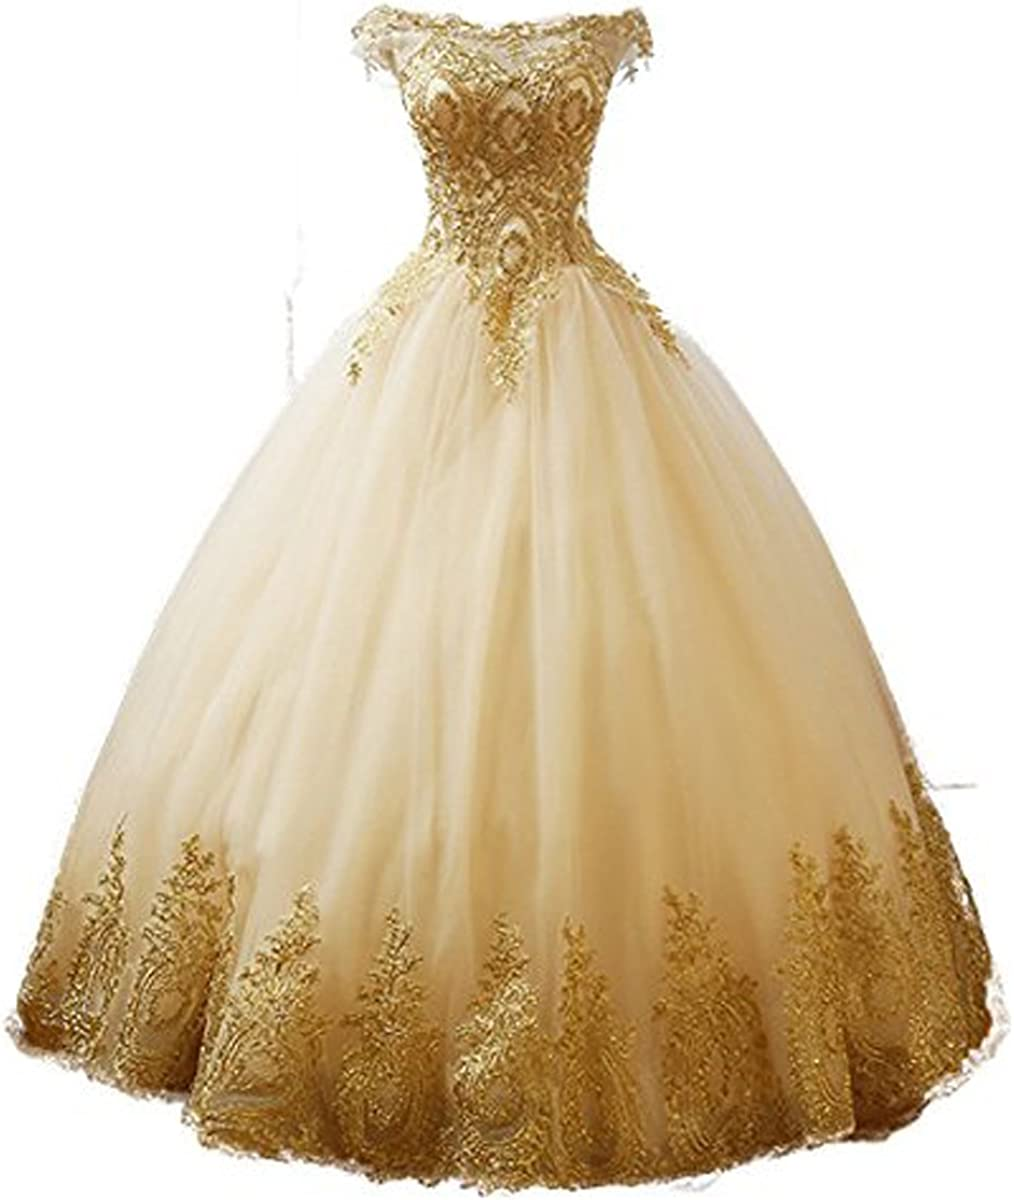 Meijia Handicraft Gold Lace Applique Dresses Ba Discount mail order Quinceanera Ranking TOP16 Prom